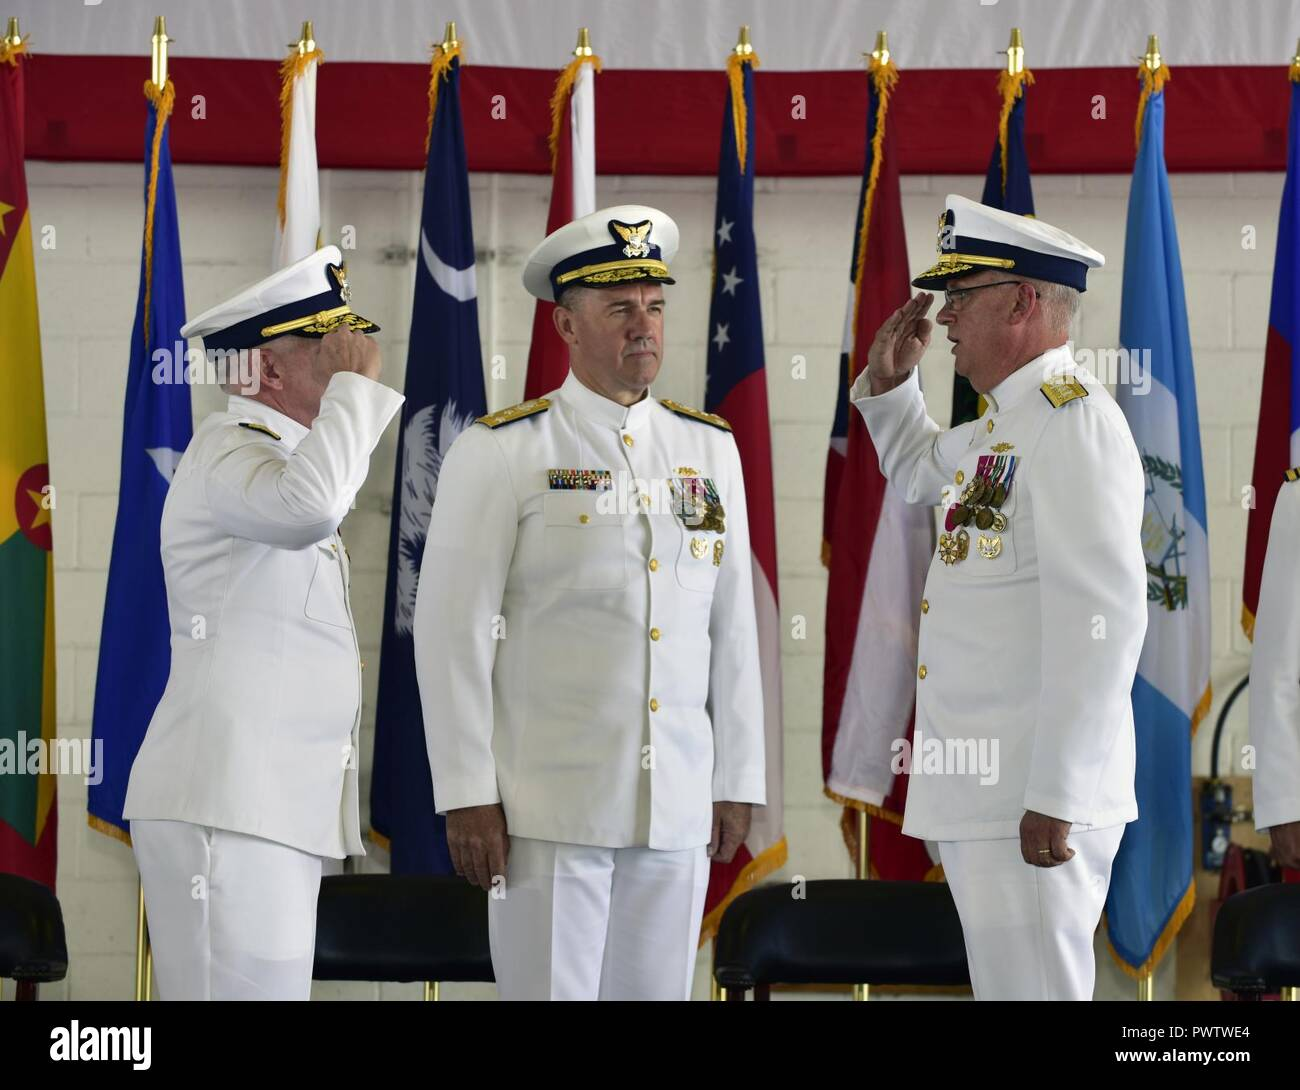 The Coast Guard Rear Adm. Scott A. Buschman passes command of the Seventh District to Rear Adm. Peter J. Brown during the Change of Command Ceremony at Air Station Miami on June 23, 2017. Stock Photo